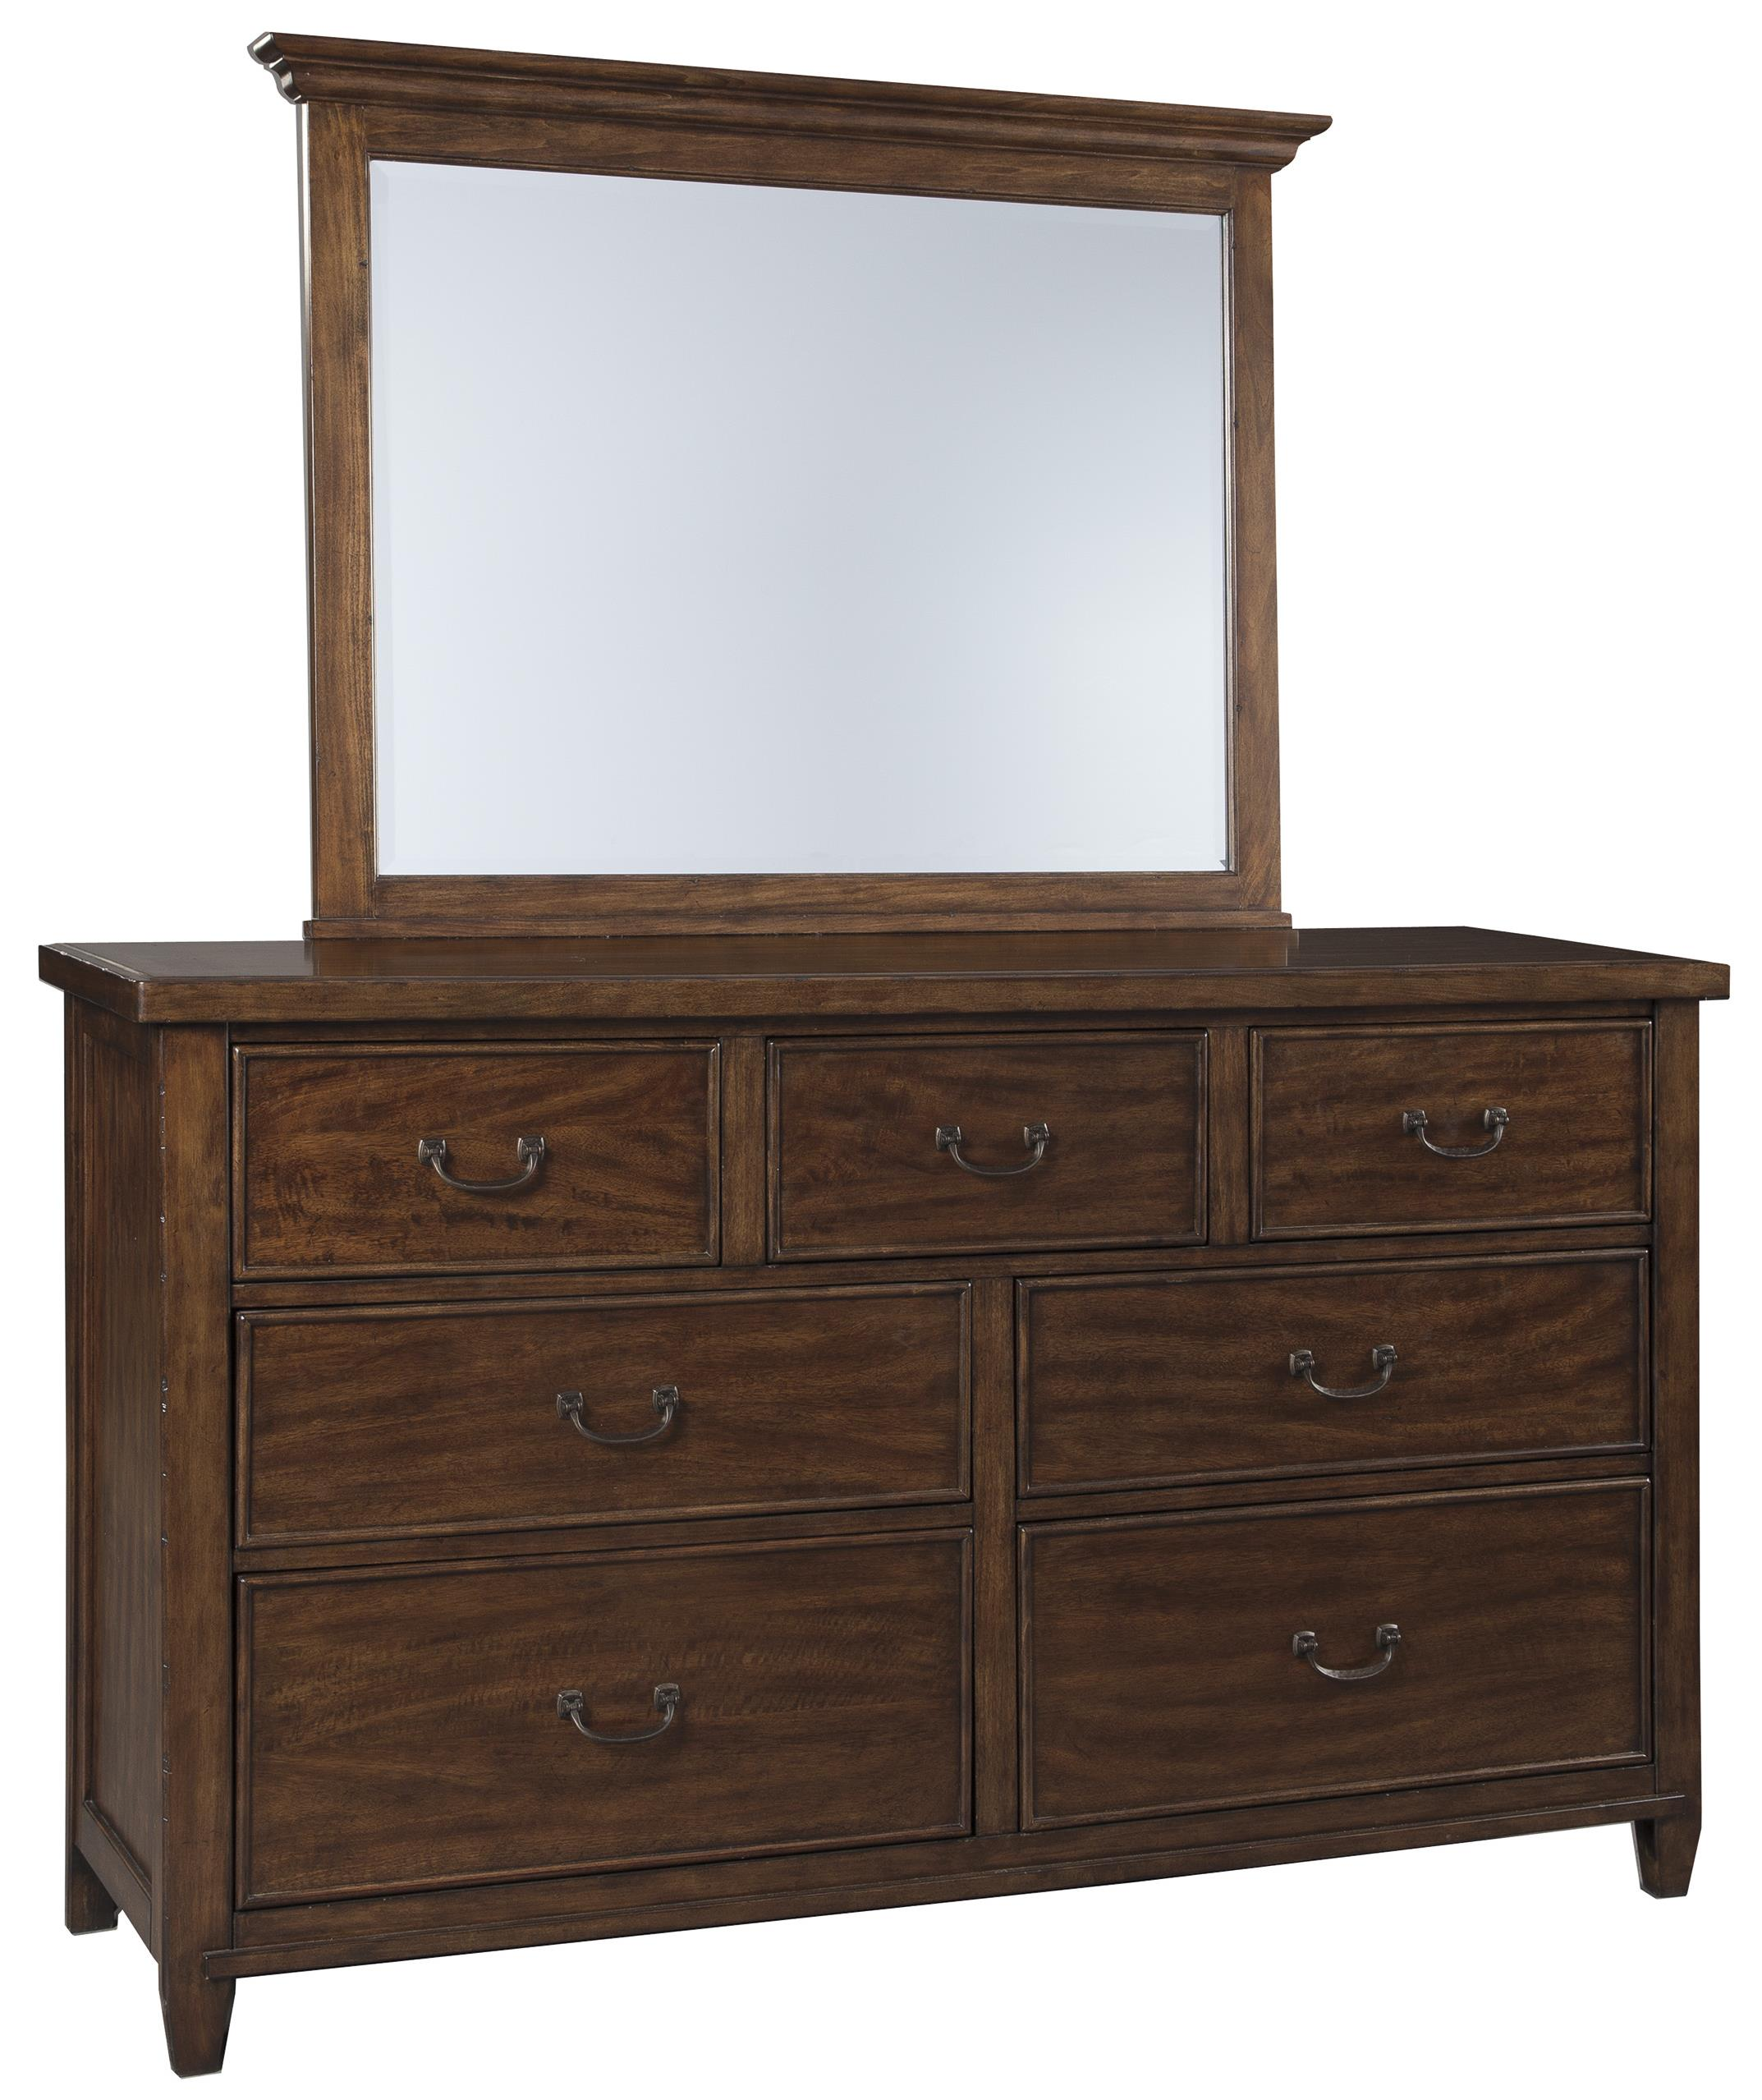 Signature Design by Ashley Chaddinfield Dresser & Bedroom Mirror - Item Number: B648-31+36